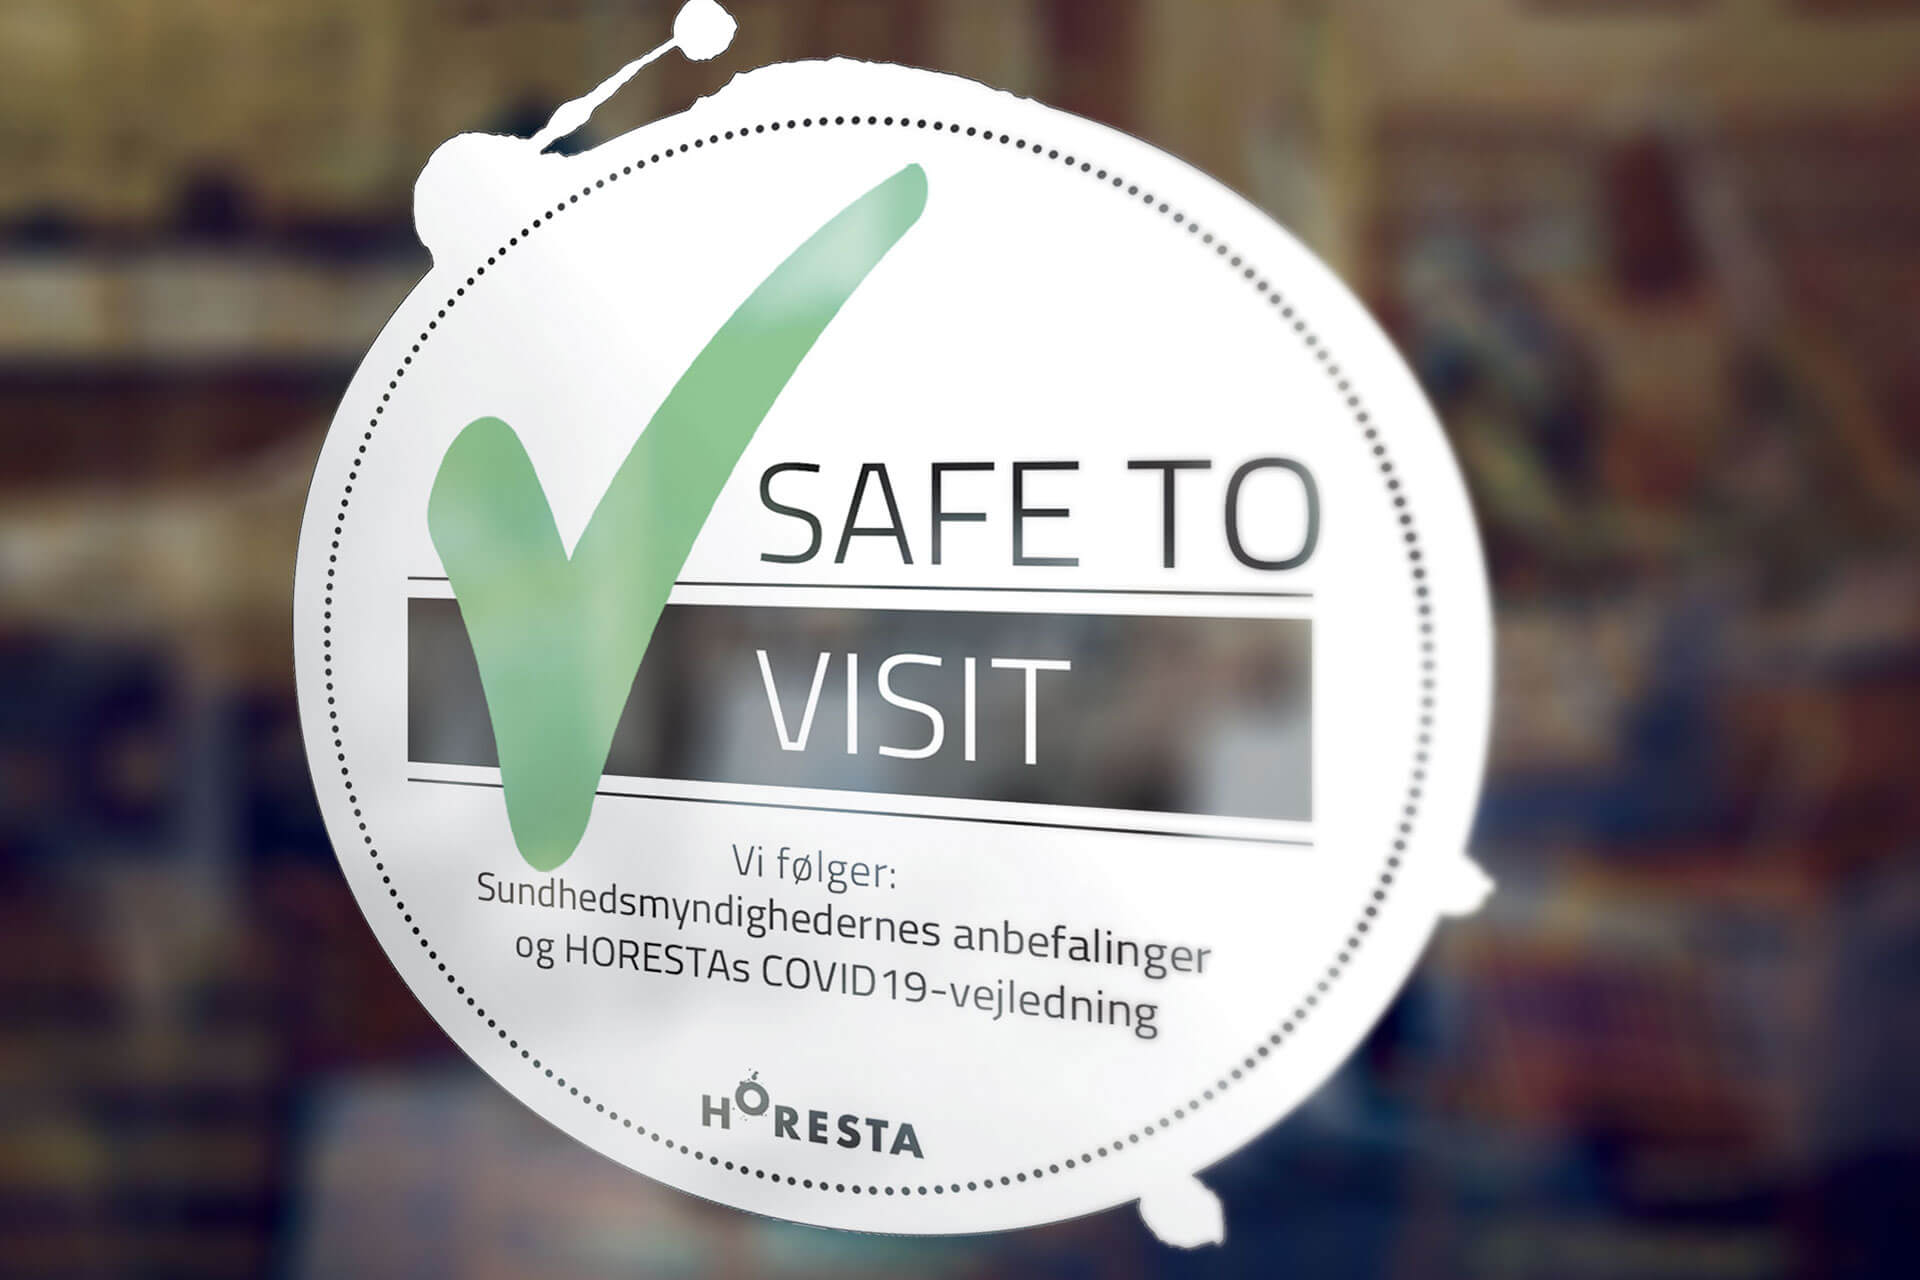 Safe to visit Horesta